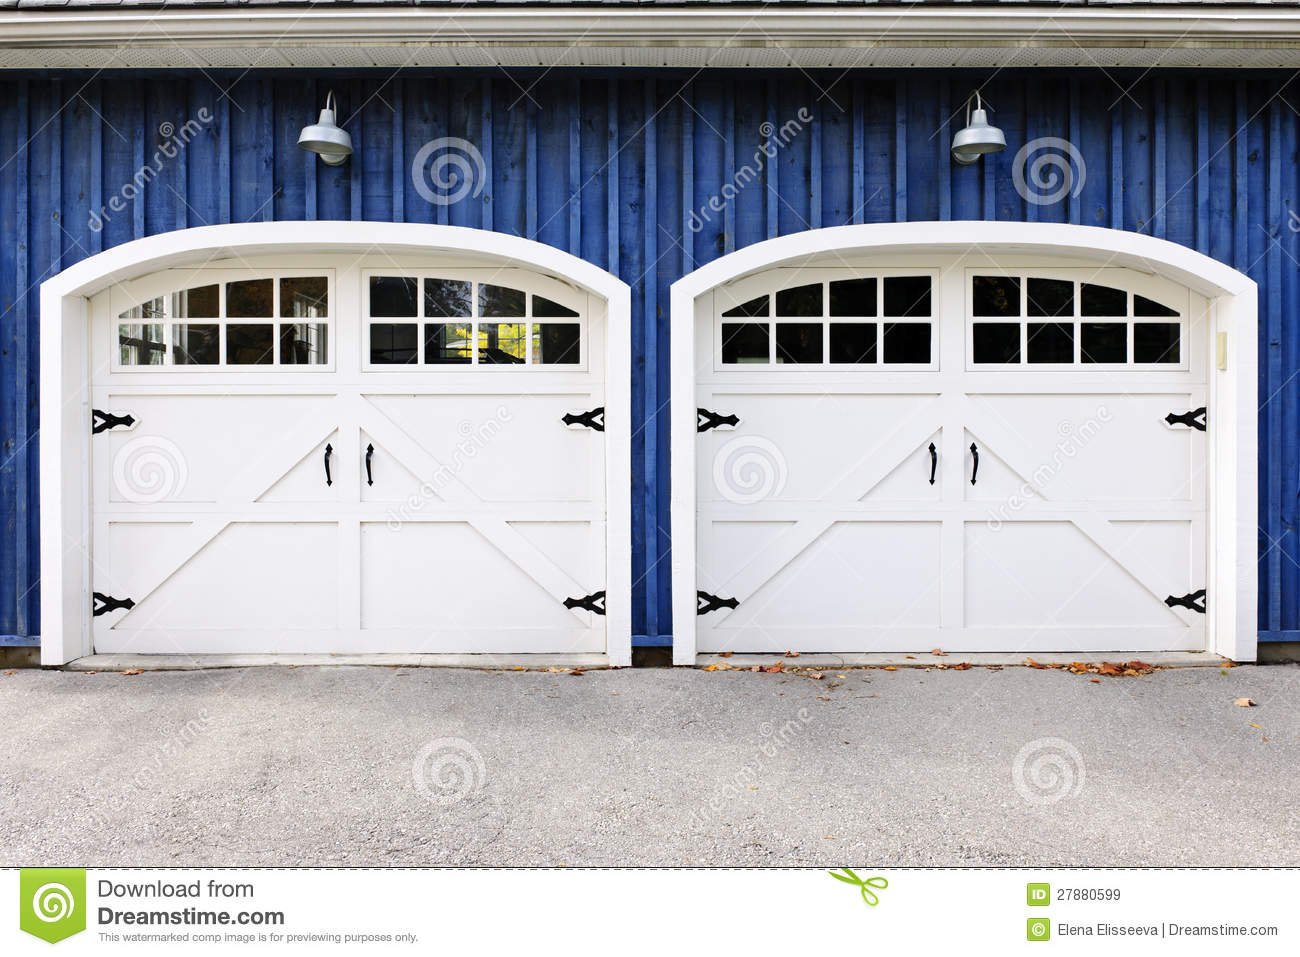 957 #82A229 Two White Garage Doors With Windows On Blue House. wallpaper Double Garage Doors With Windows 38451300